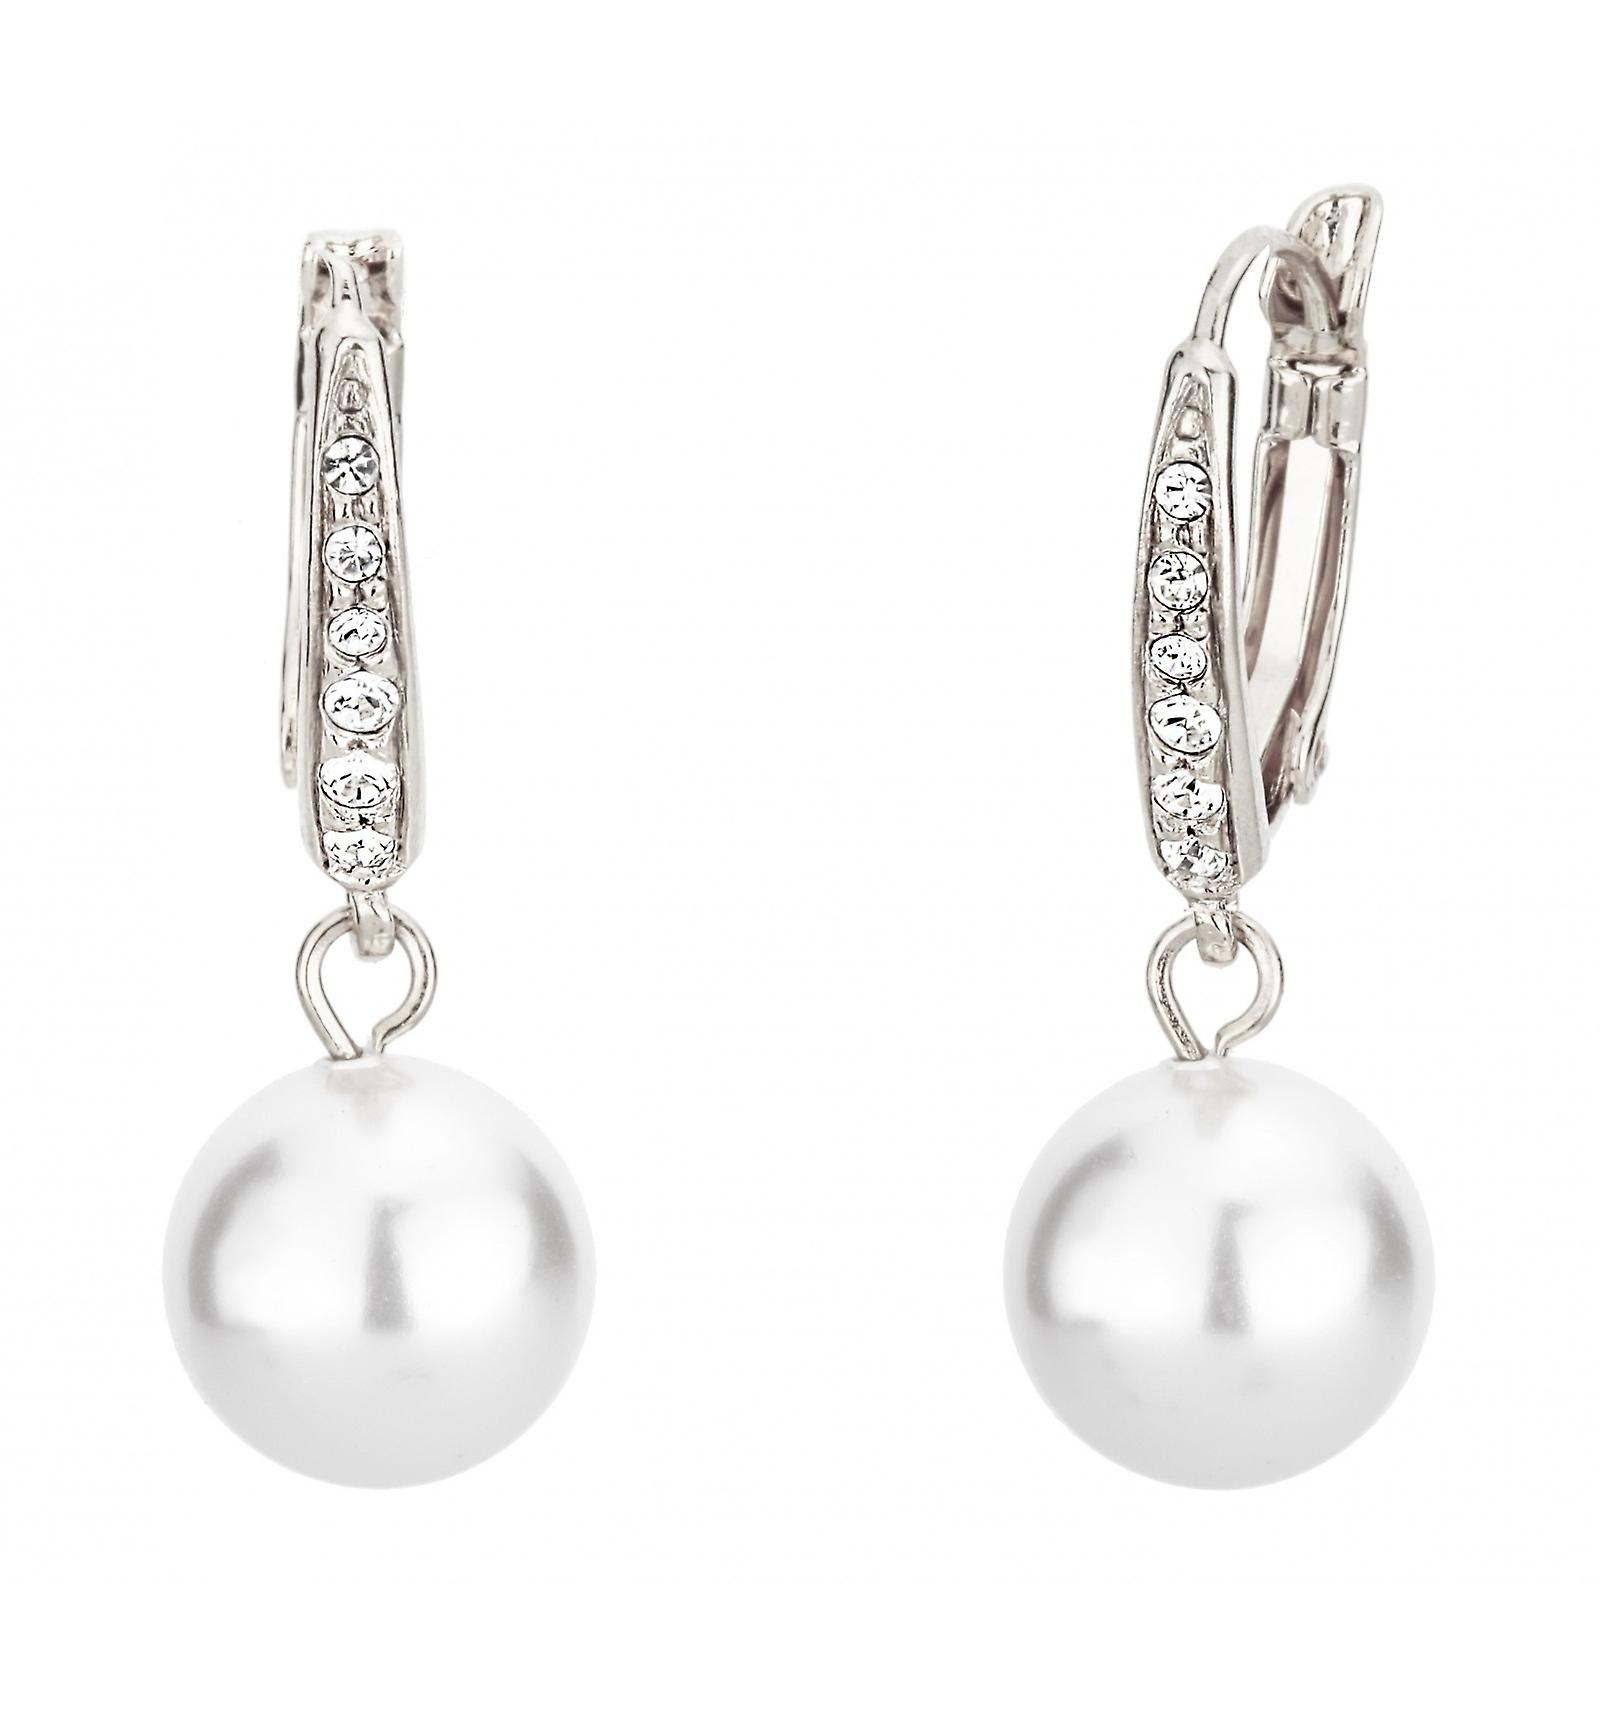 Traveller drop earring - leverback - 10mm white pearl - rhodium plated - 114144